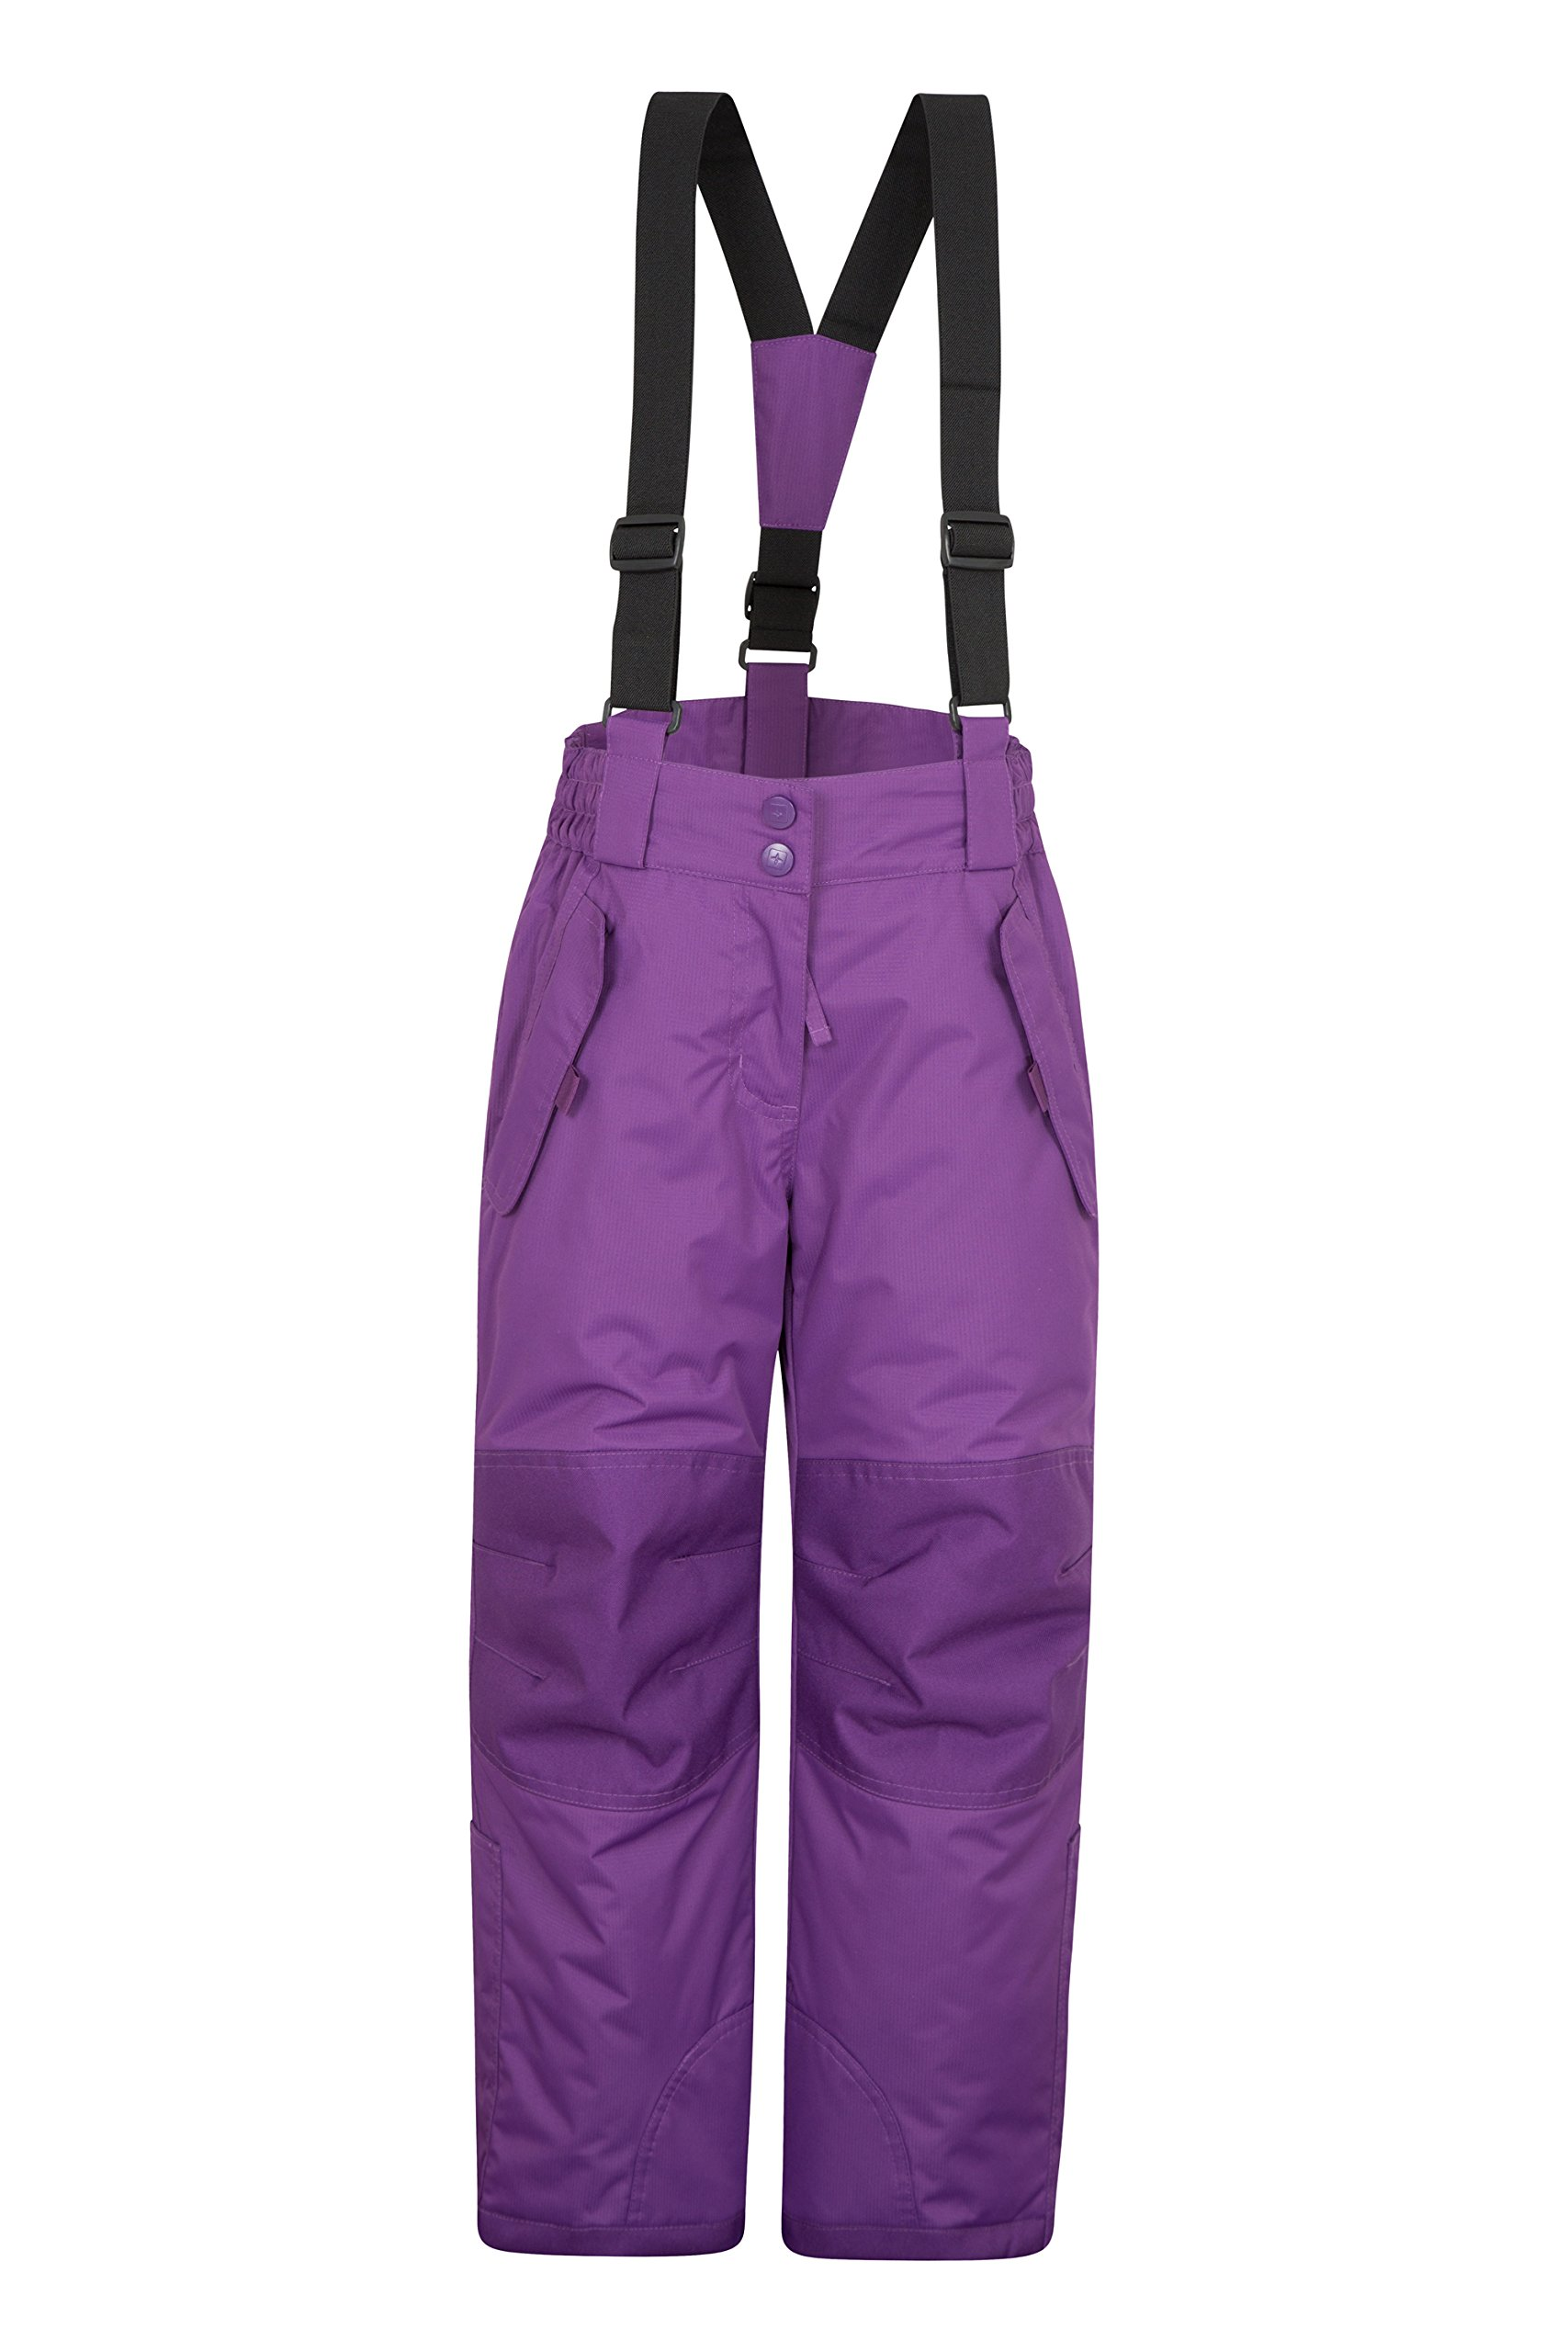 Mountain Warehouse Honey Kids Snow Pants - Ski